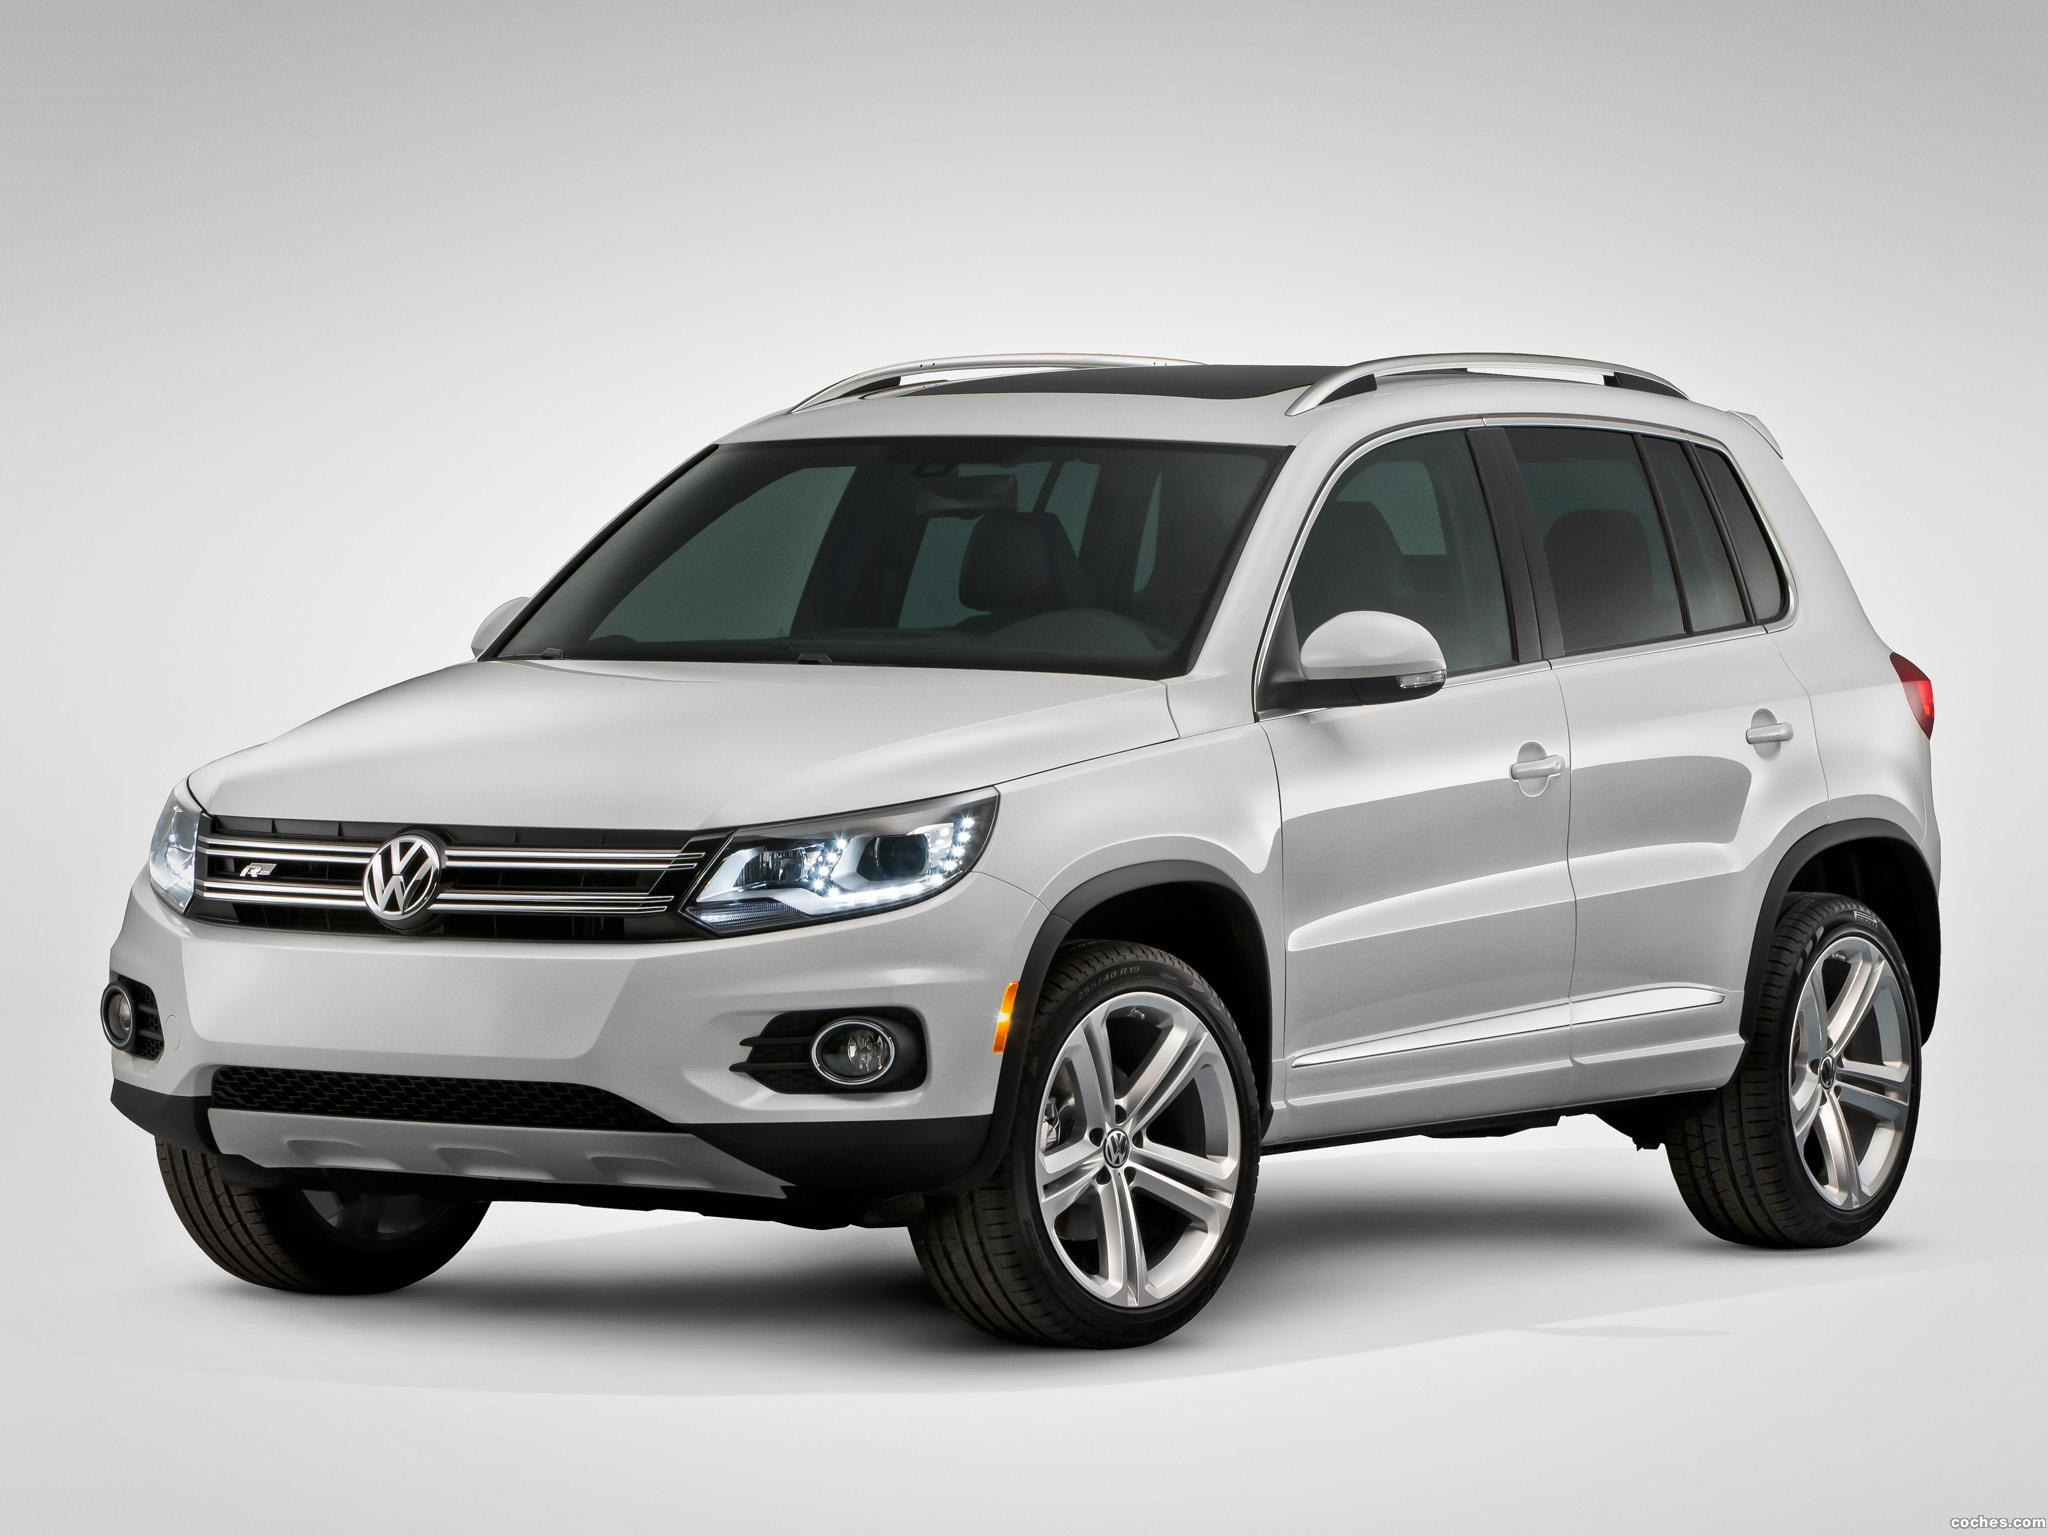 fotos de volkswagen tiguan r line usa 2013. Black Bedroom Furniture Sets. Home Design Ideas